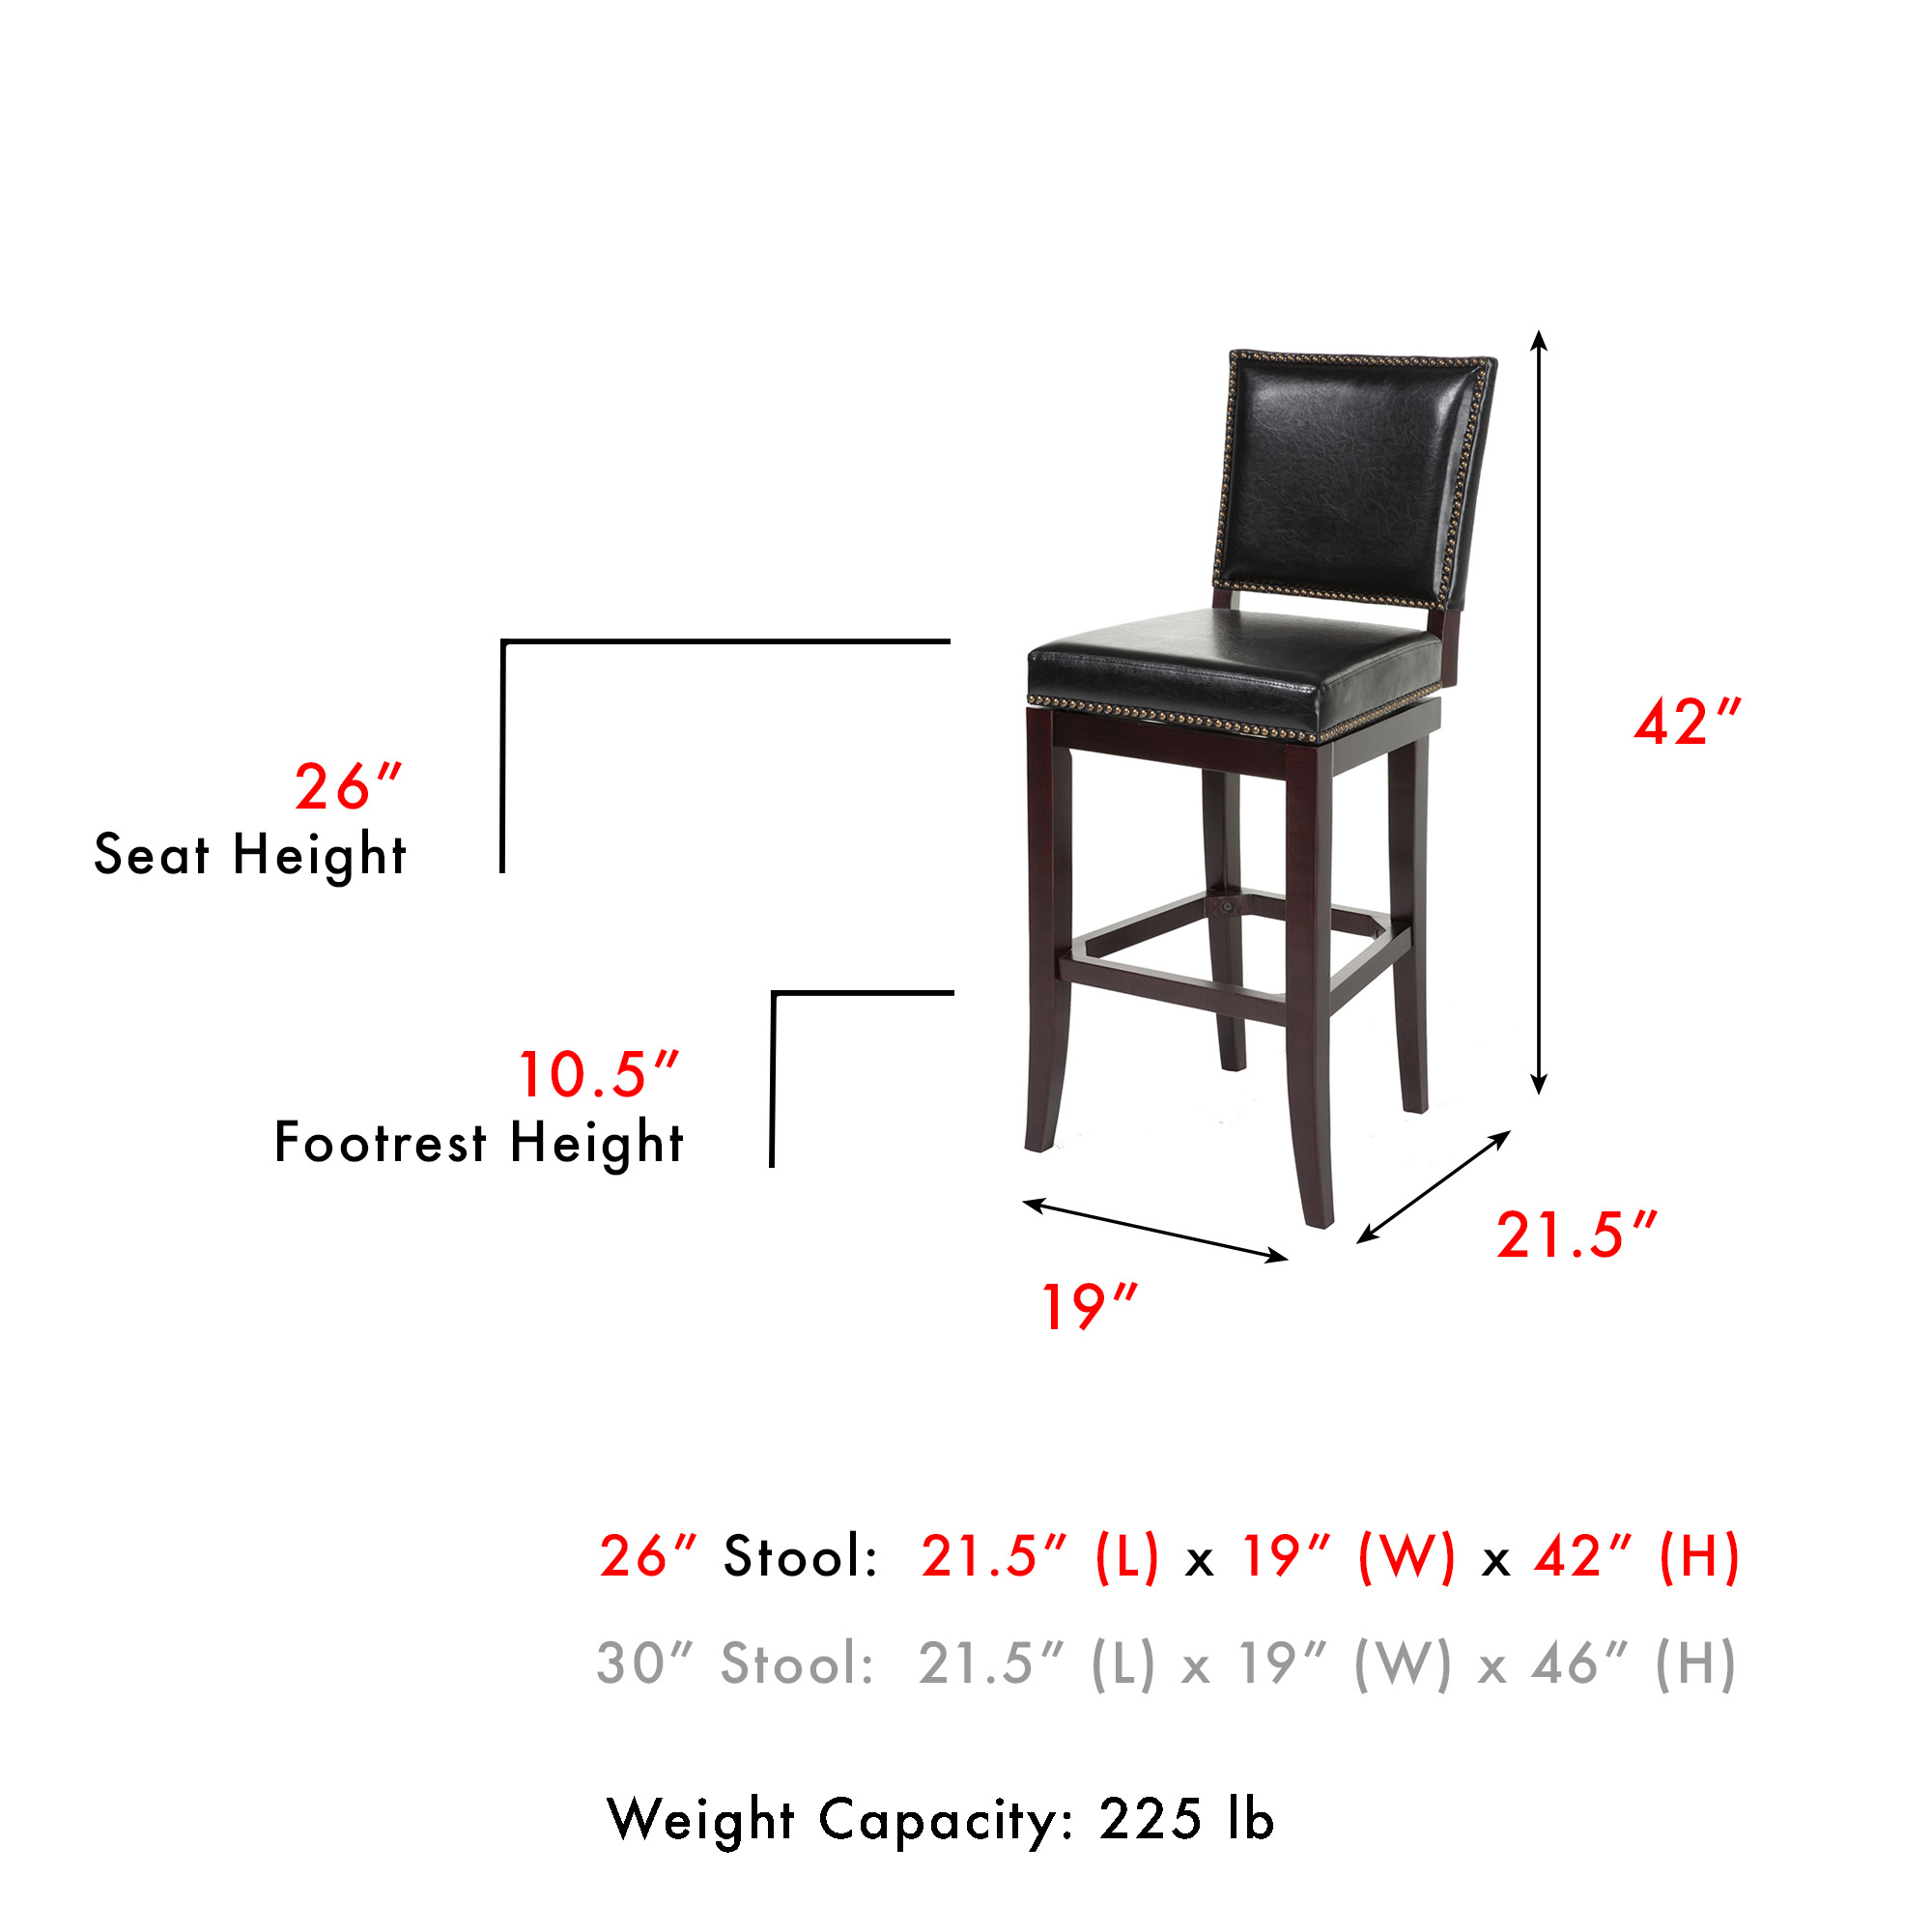 C1x116fashion Bed Group Sacramento Swivel Seat Counter Stool With